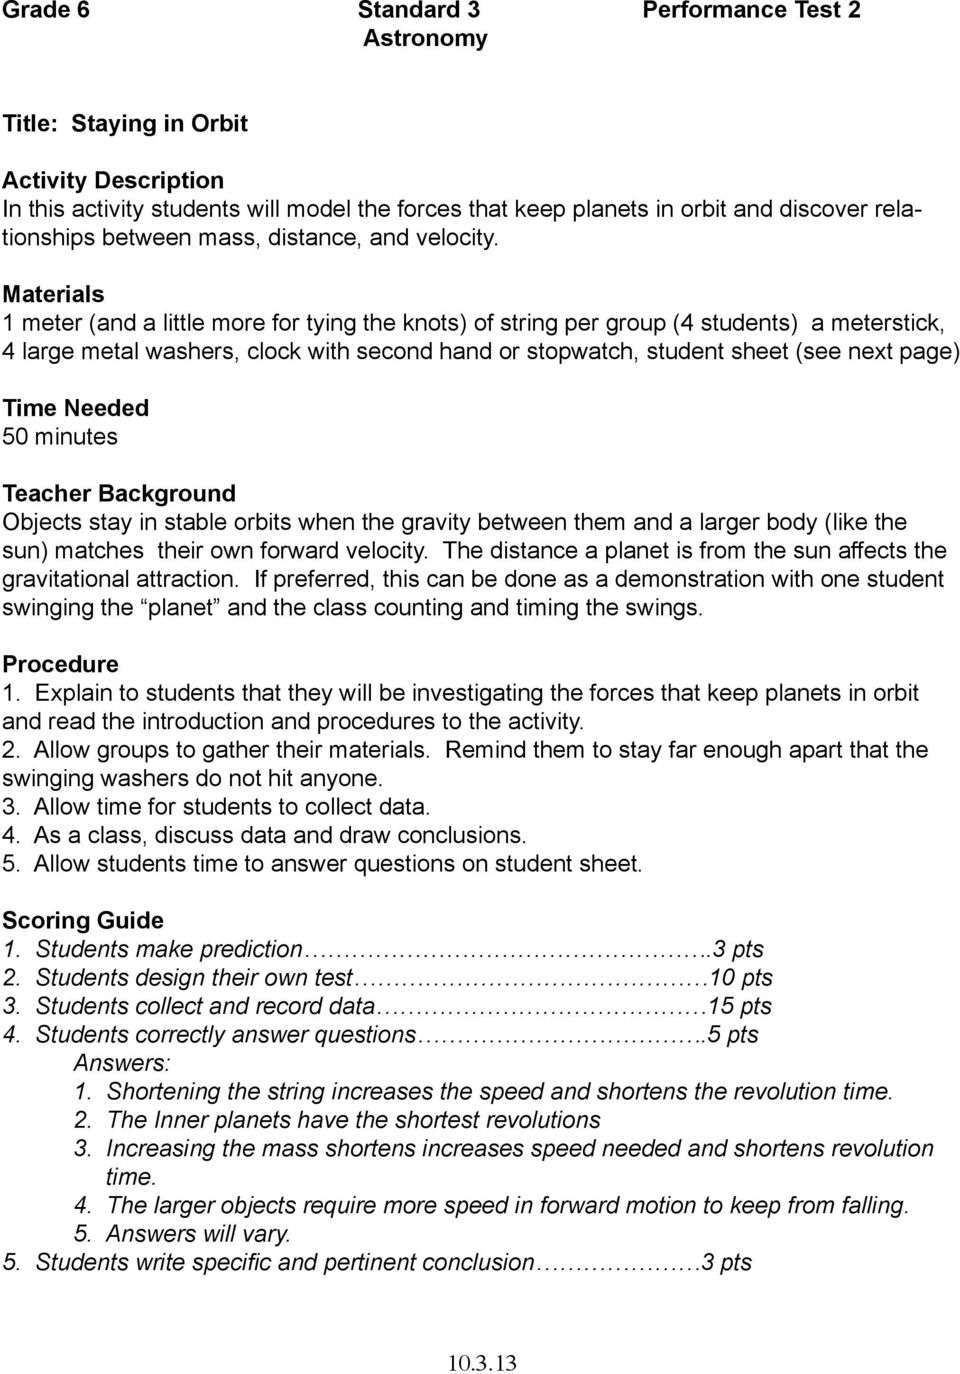 Materials 1 meter (and a little more for tying the knots) of string per group (4 students) a meterstick, 4 large metal washers, clock with second hand or stopwatch, student sheet (see next page) Time